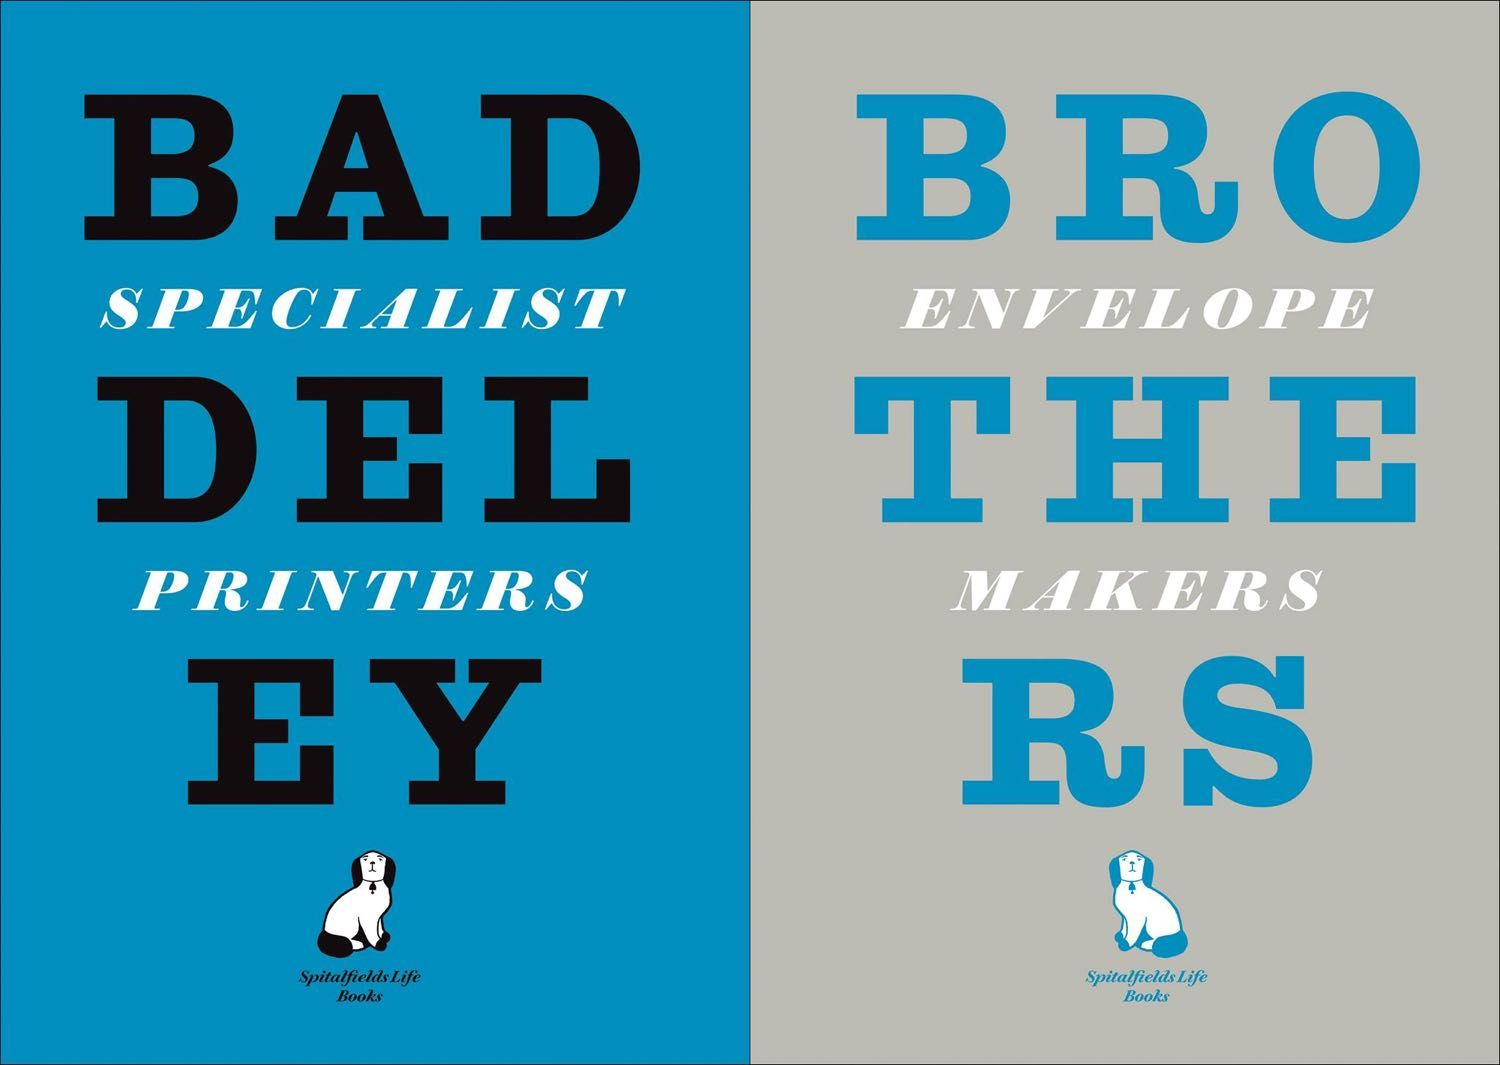 One of David Pearson's typographic designs from 'Baddeley Brothers' - a new book by The Gentle Author of Spitalfields Life dedicated to the work of this London printer http://allthingsconsidered.co.uk/2015/10/baddeley-brothers.html